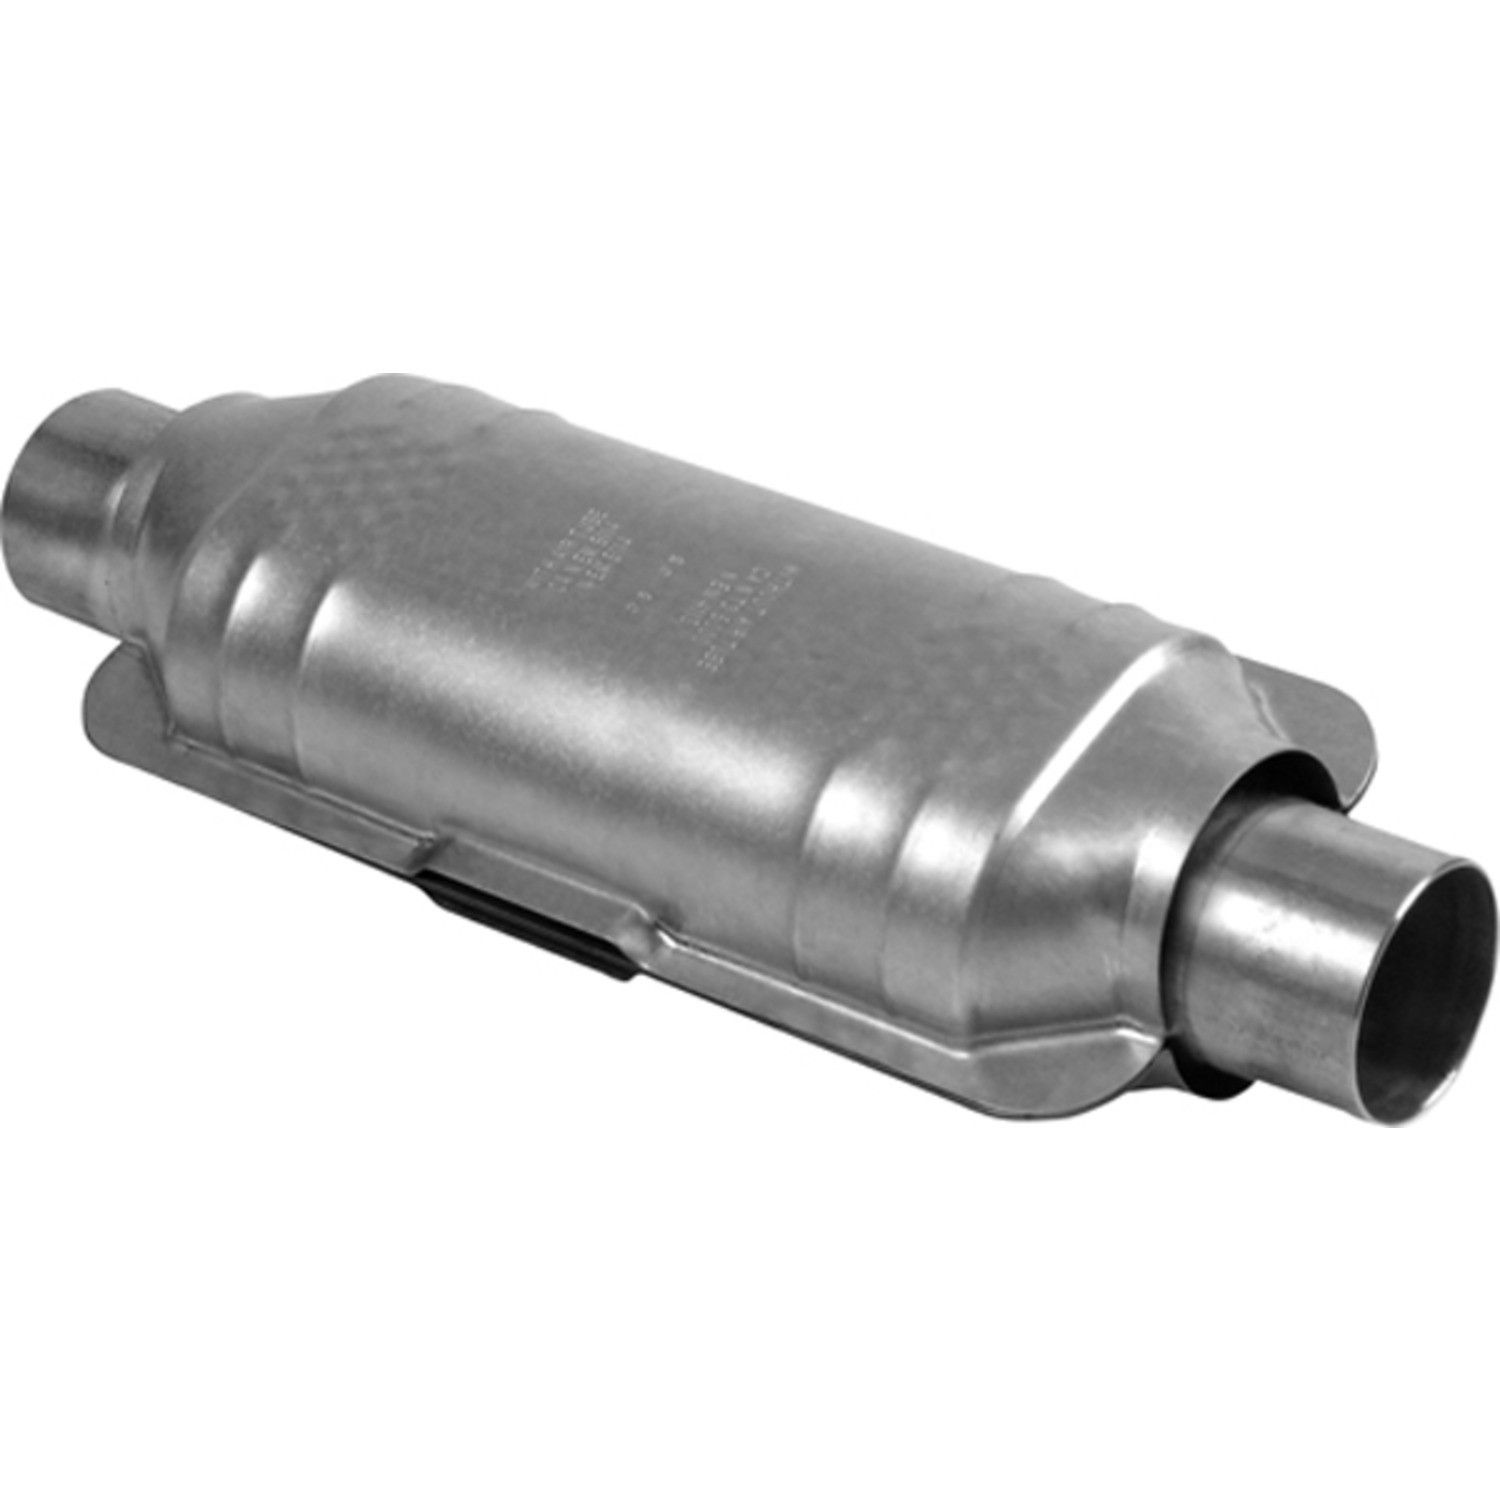 2009 Ford Escape Catalytic Converter Center 4 Cyl 25l Eastern 93175 Undercar Excludes Hybrid Legal Note Not For Sale Or Use In The State Of: 2002 Ford Escape Catalytic Converter Replacement At Woreks.co